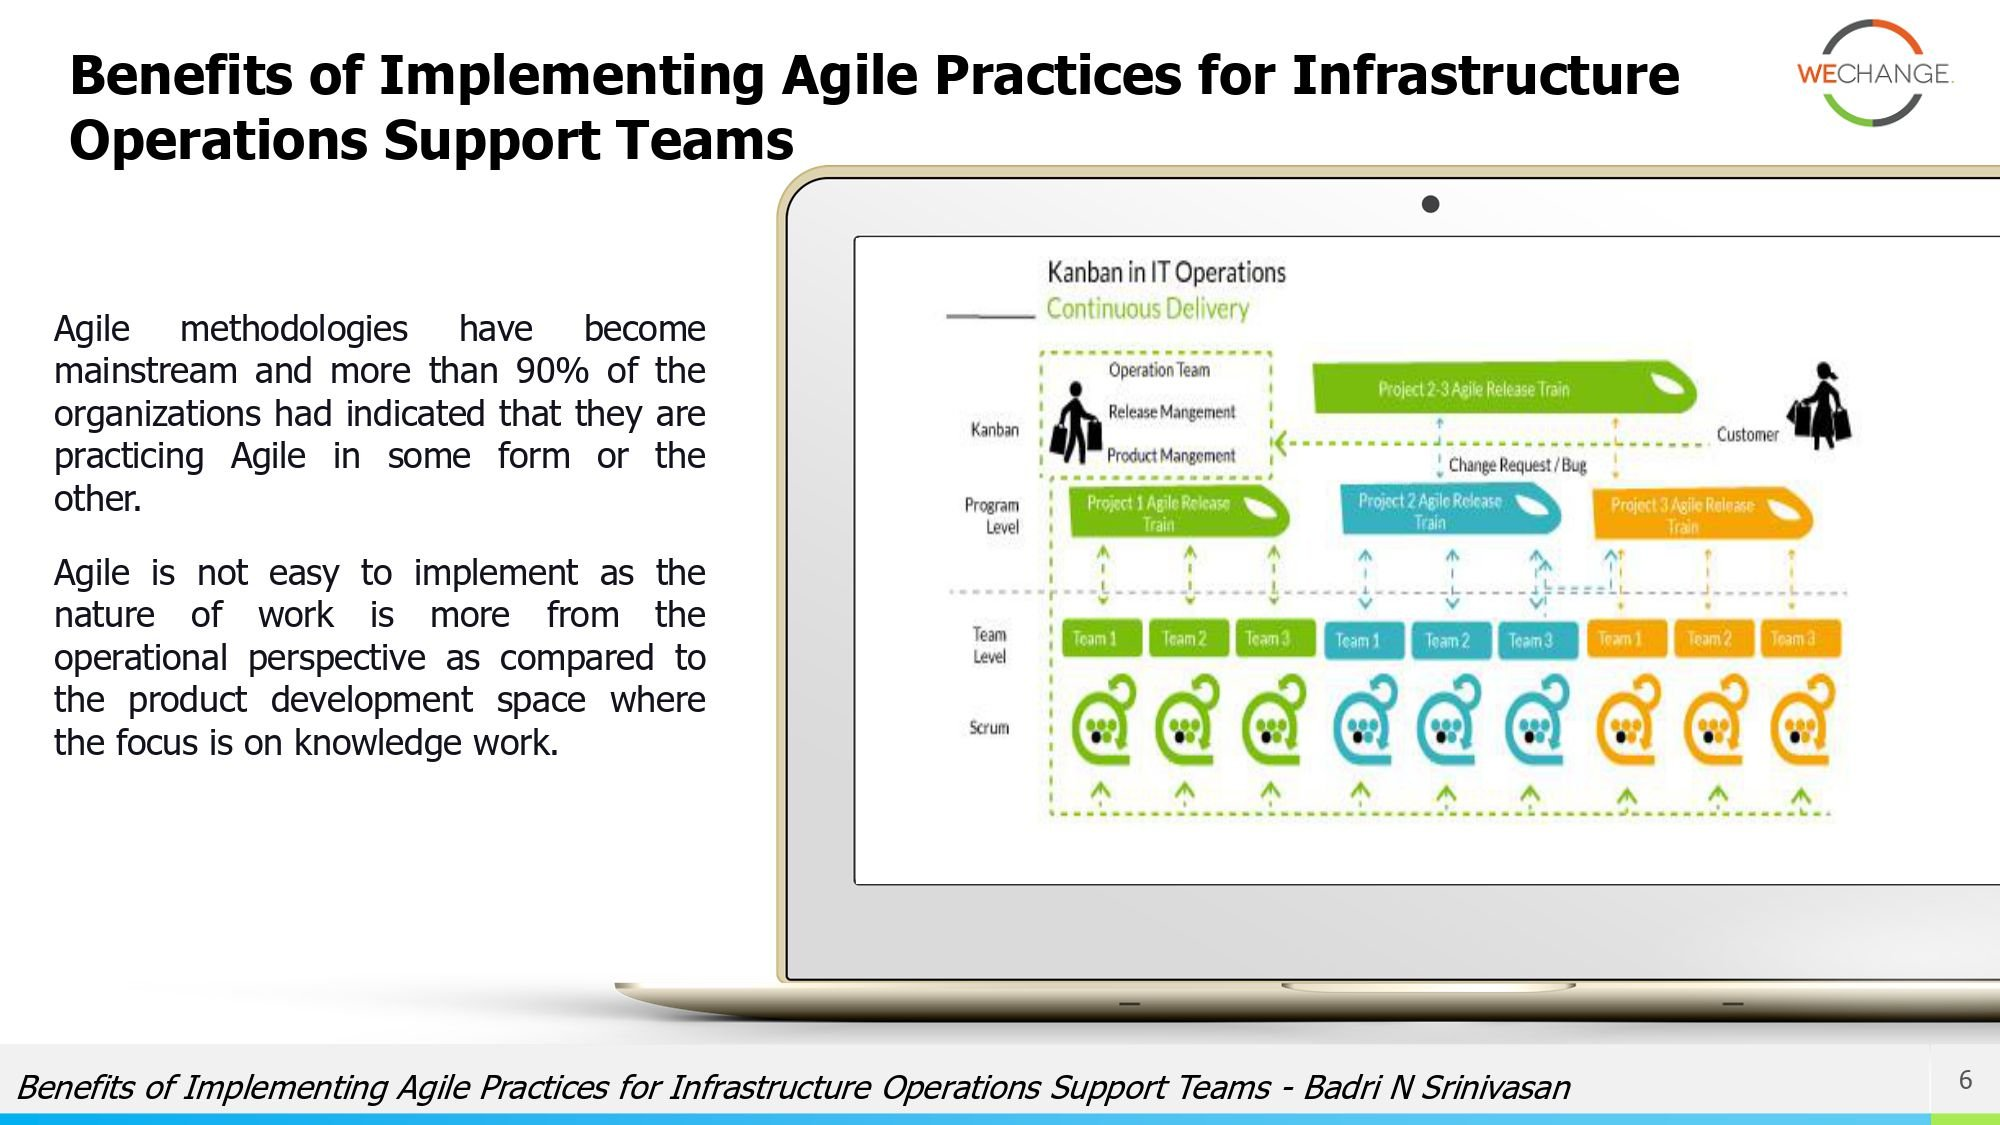 Operations agility page 0006 compressed Being & Doing Agile in Customer oriented care and Operations Organizations